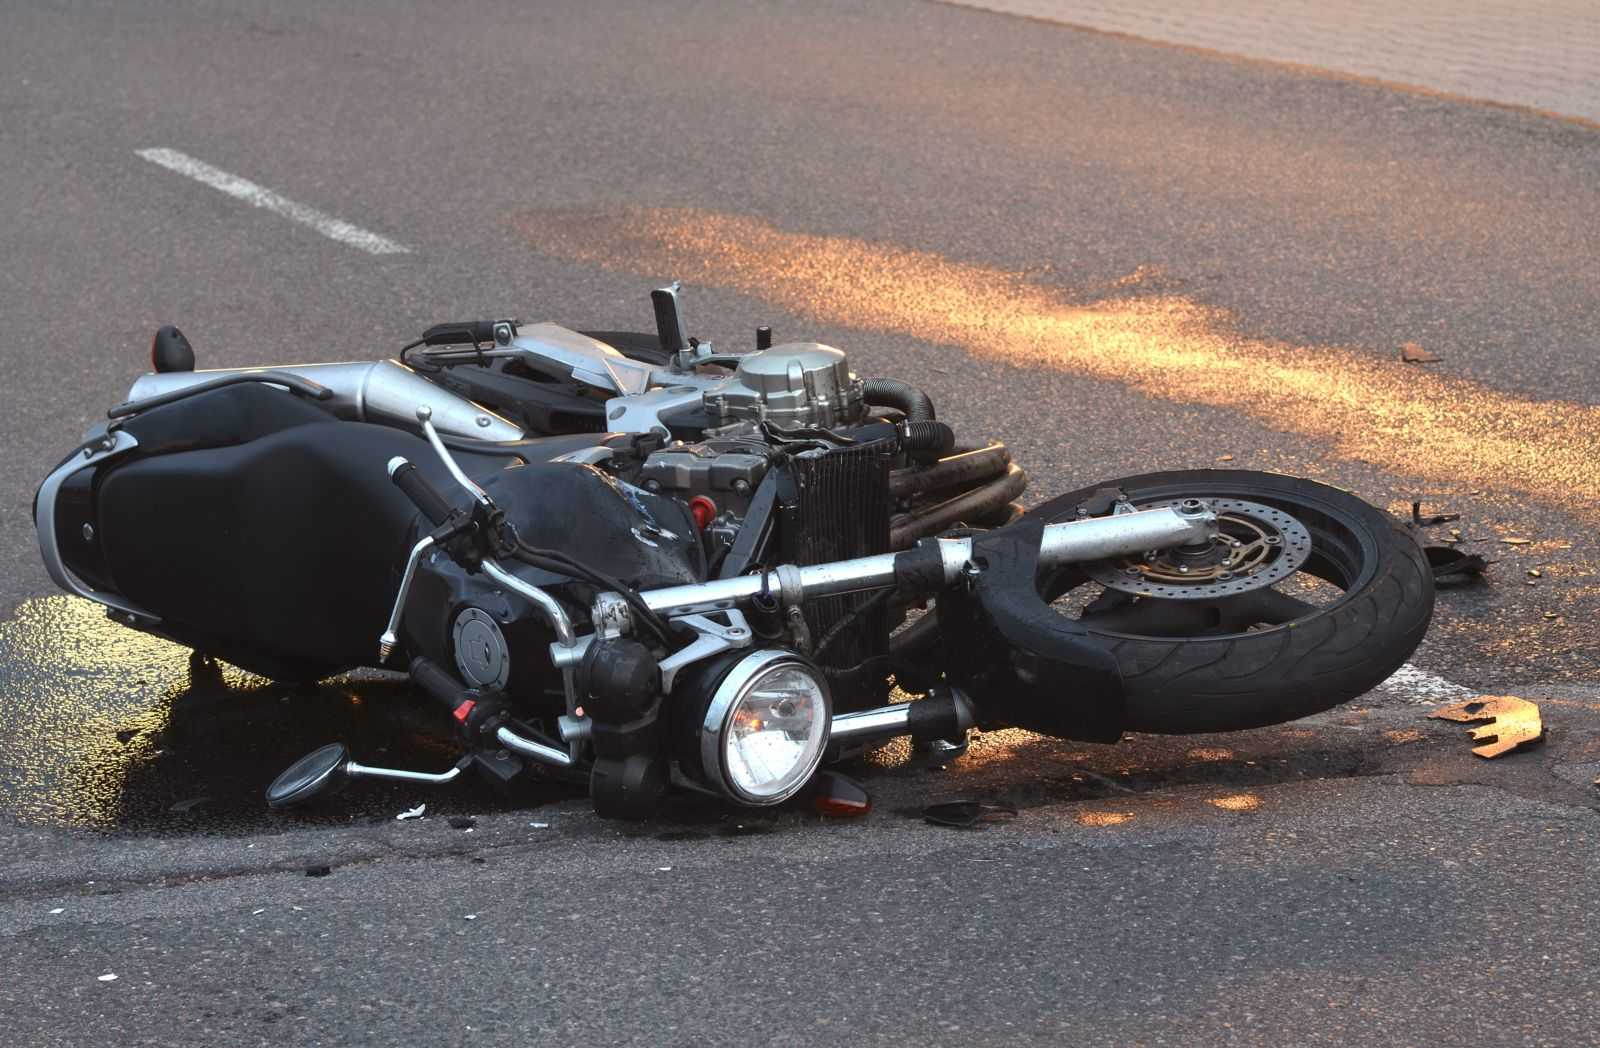 Facts On Motorcycle Accidents In The Us